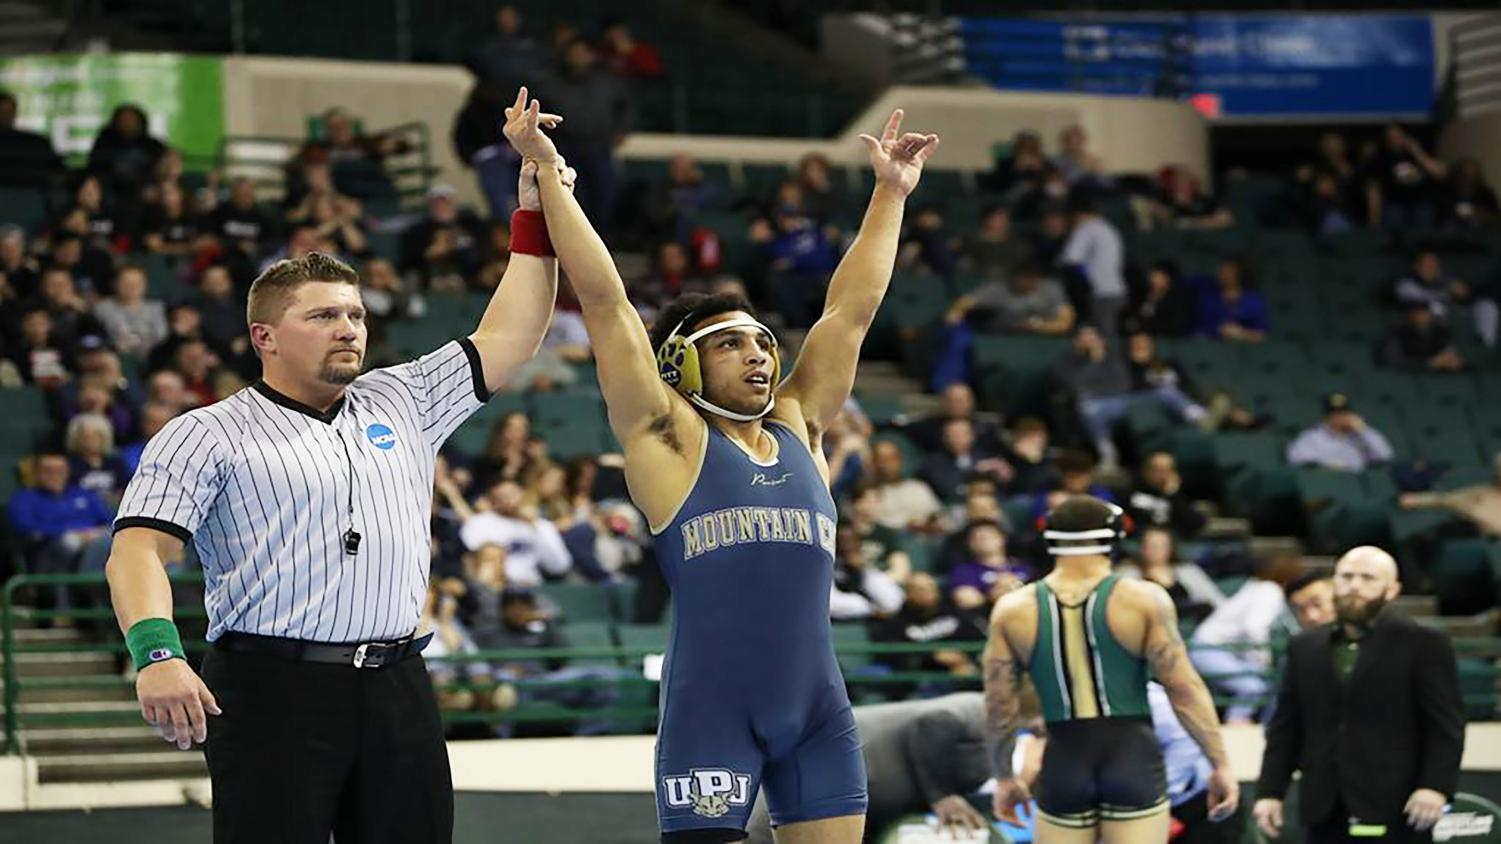 Chris Eddins won his second national championship in 149-pound class March 9 in Cleveland.